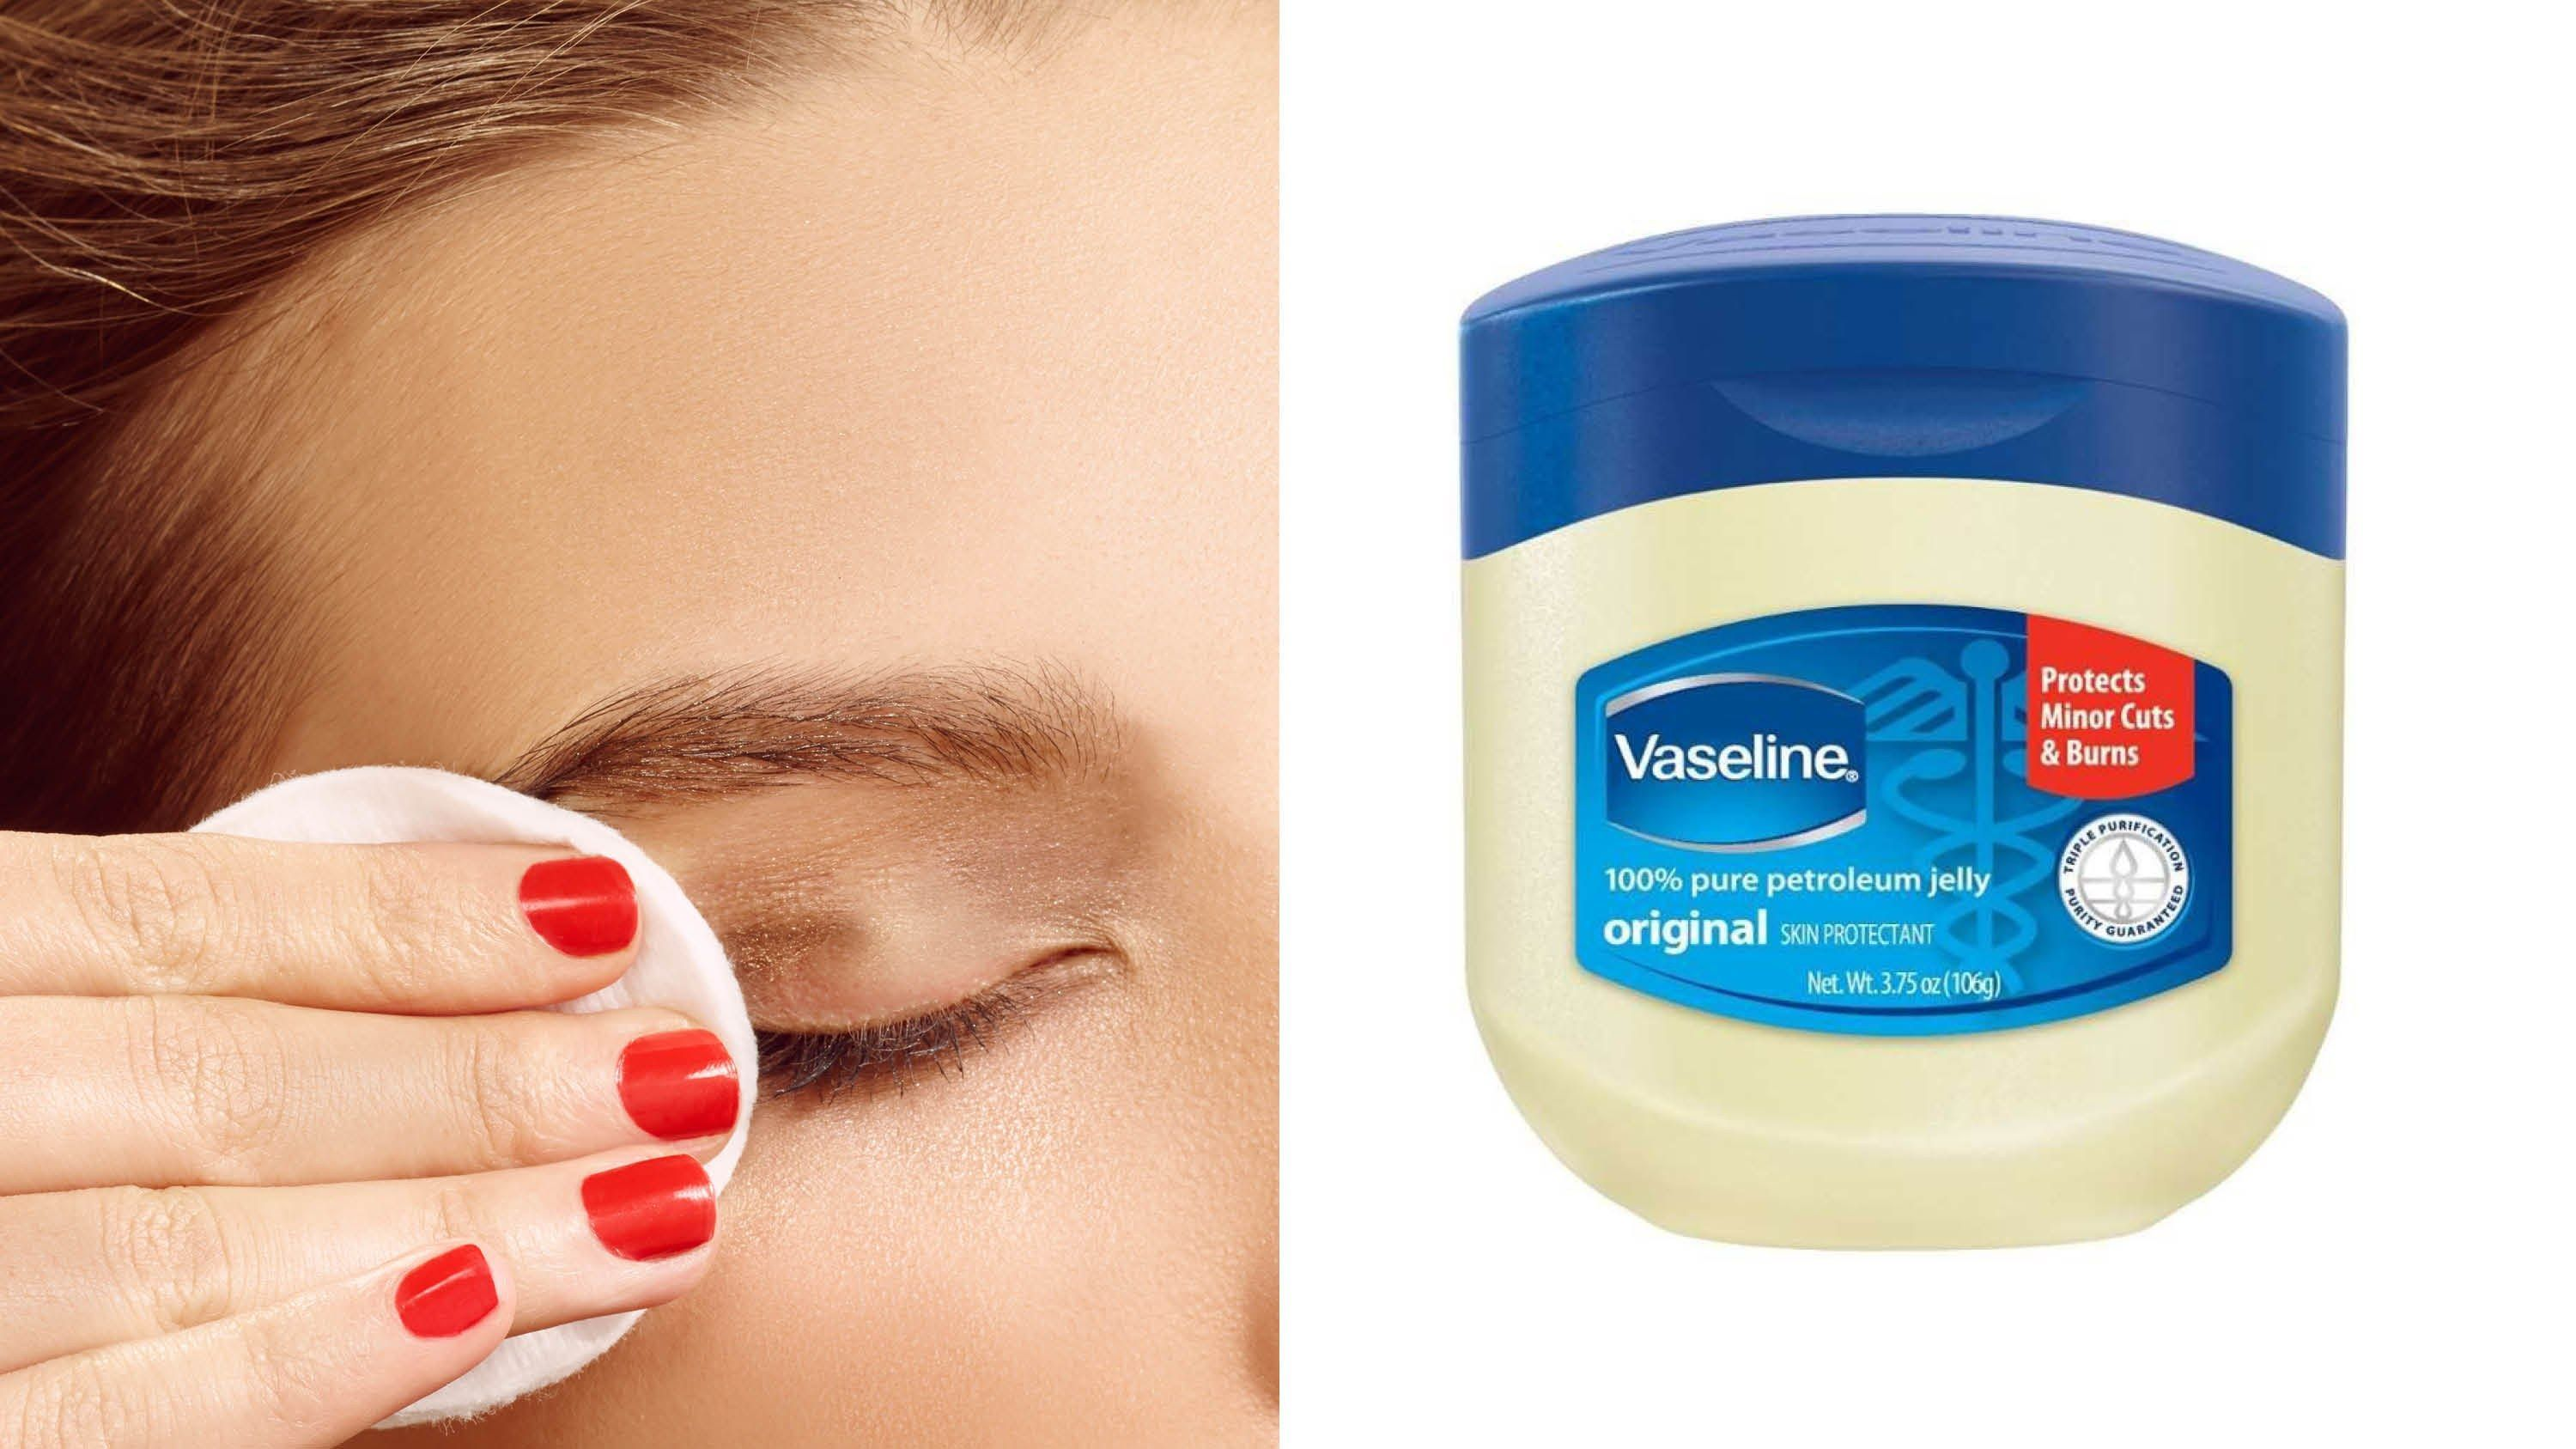 The Best Makeup Removers For Sensitive Eyes, According to